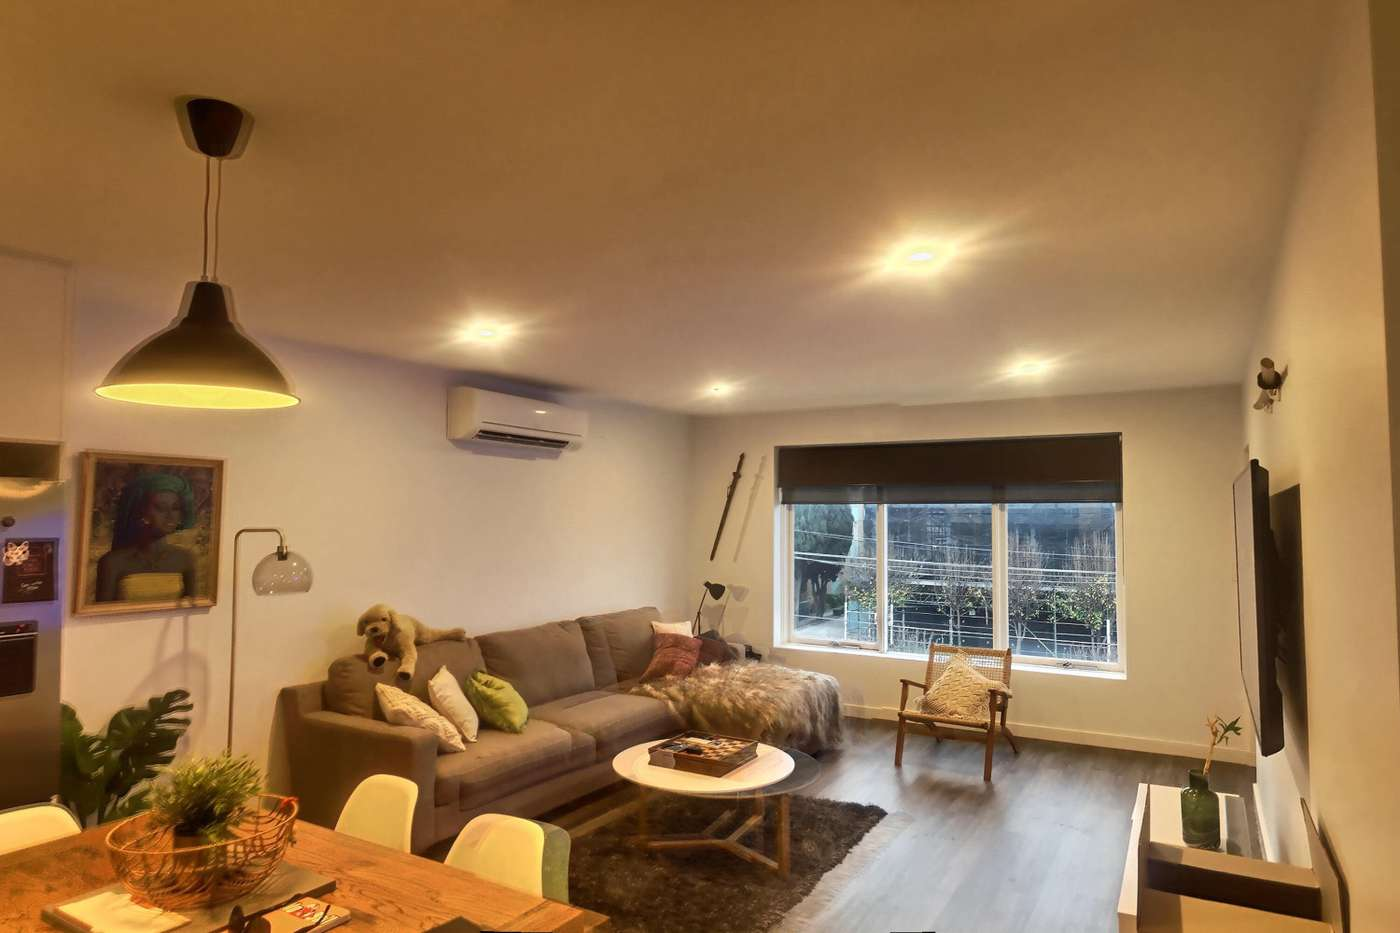 Main view of Homely house listing, 13/49 Napier Street, Footscray, VIC 3011